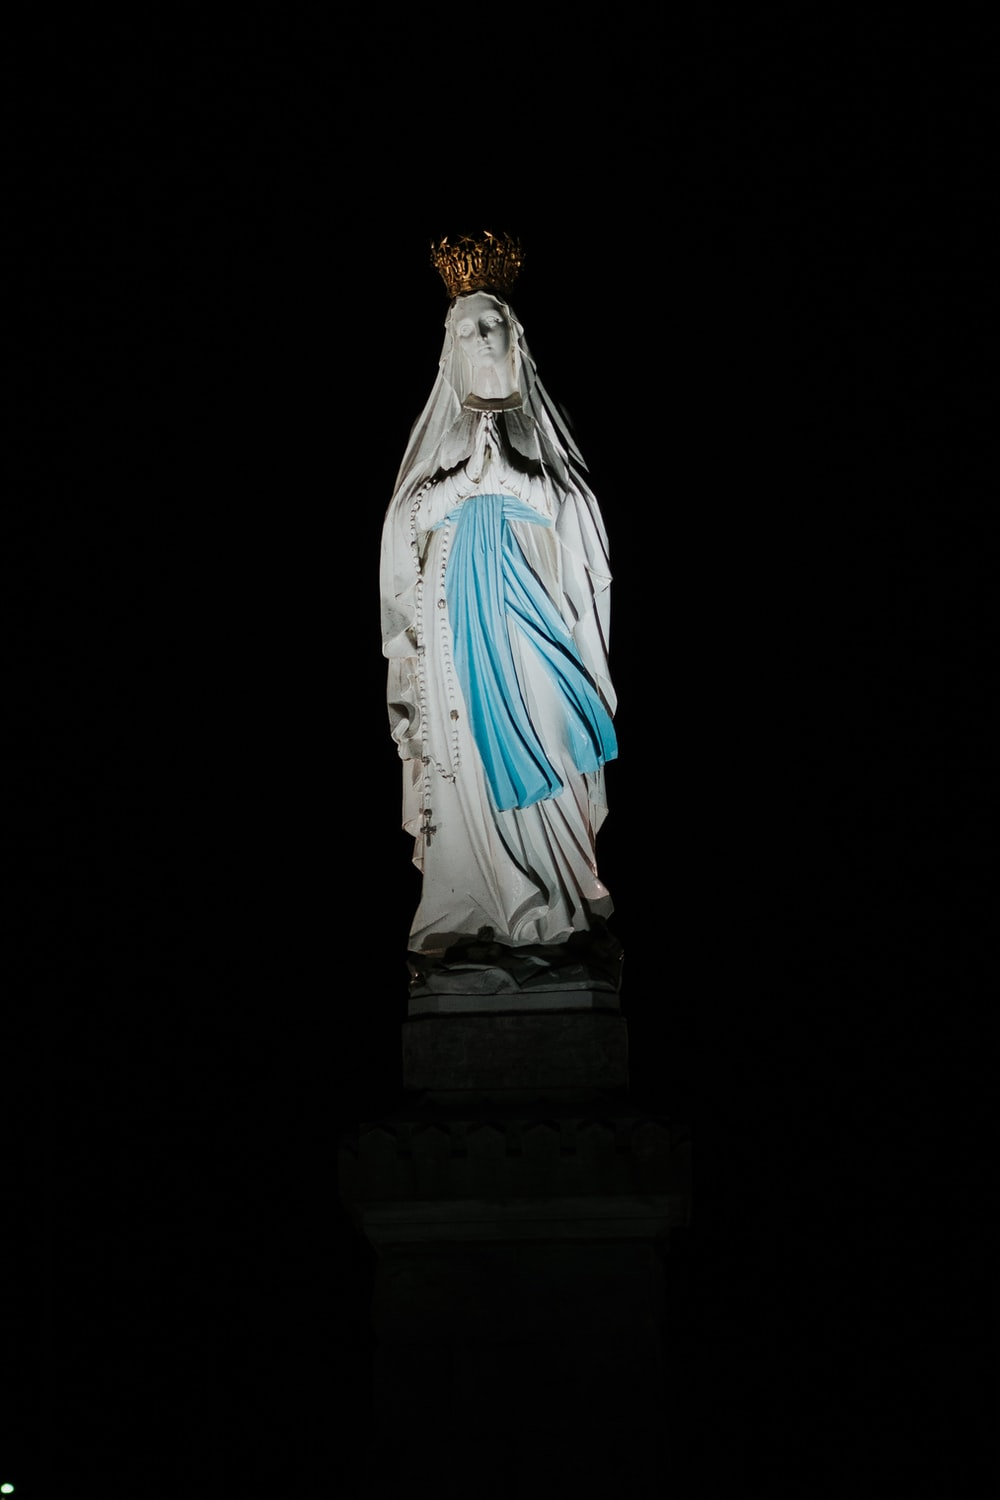 virgin mary statue on black surface